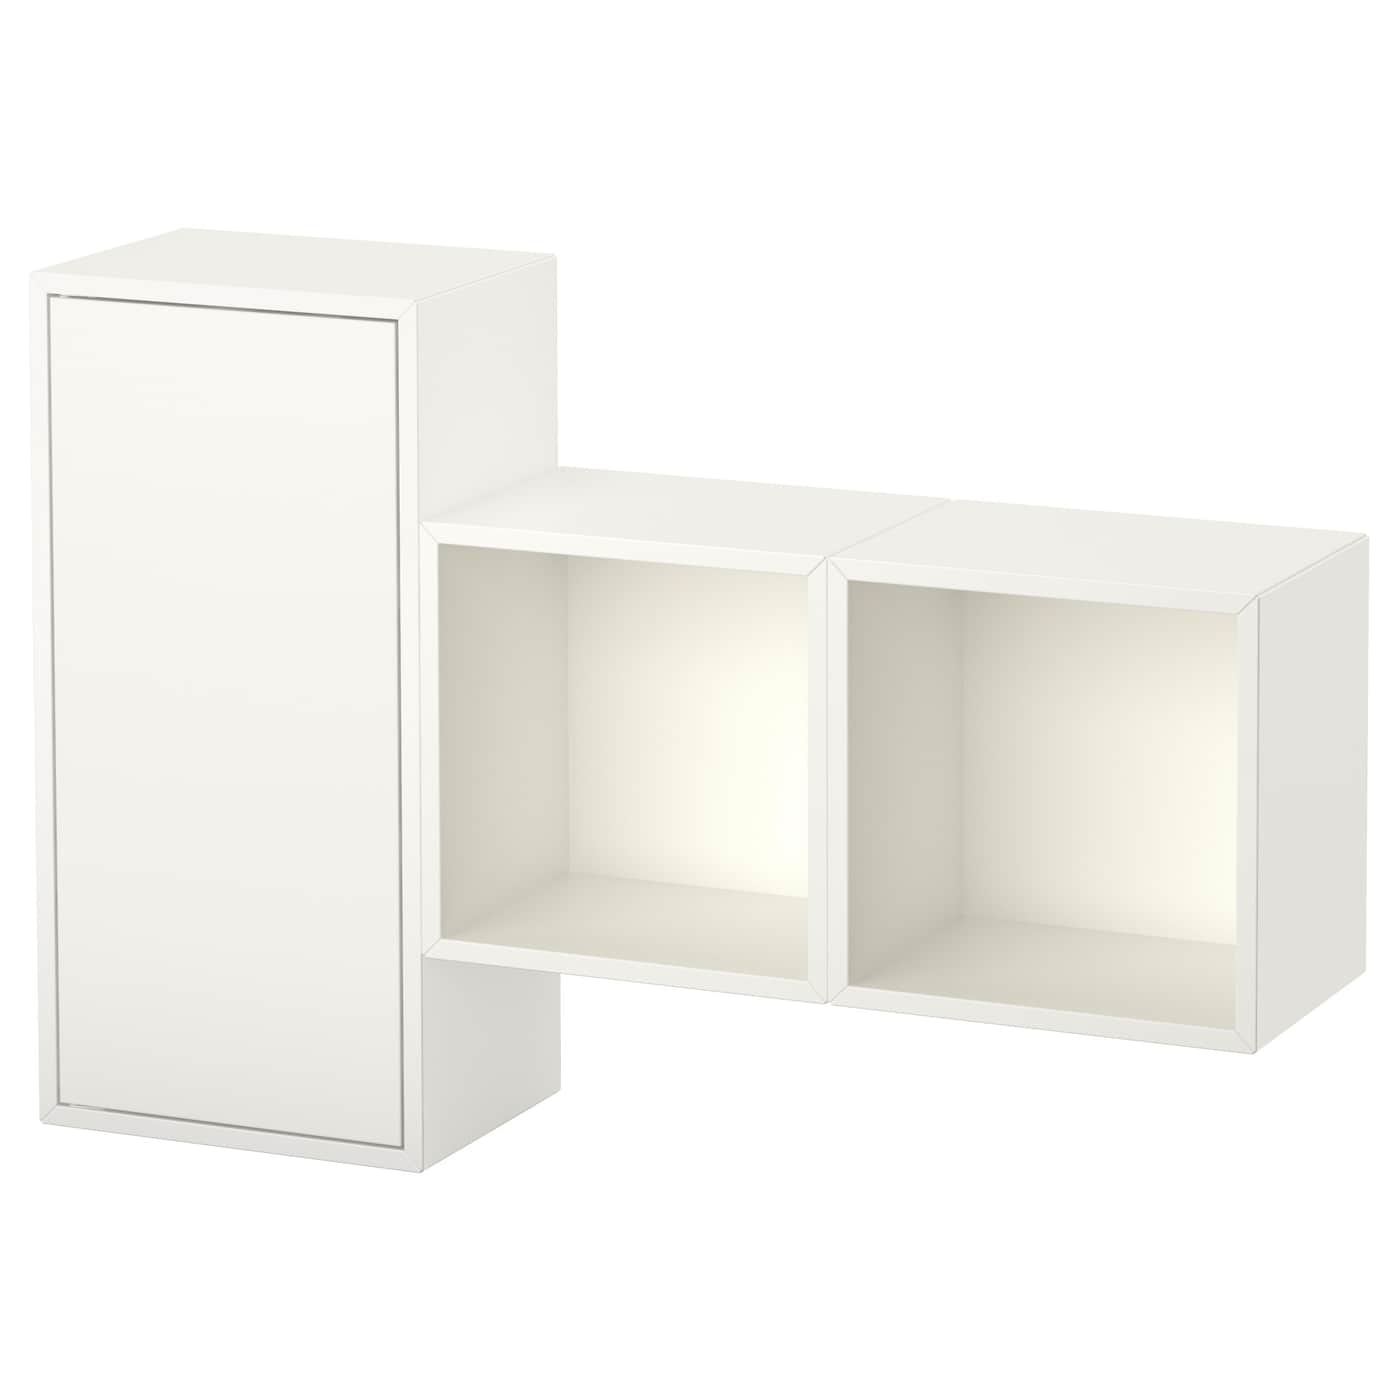 IKEA EKET Wall Mounted Cabinet Combination